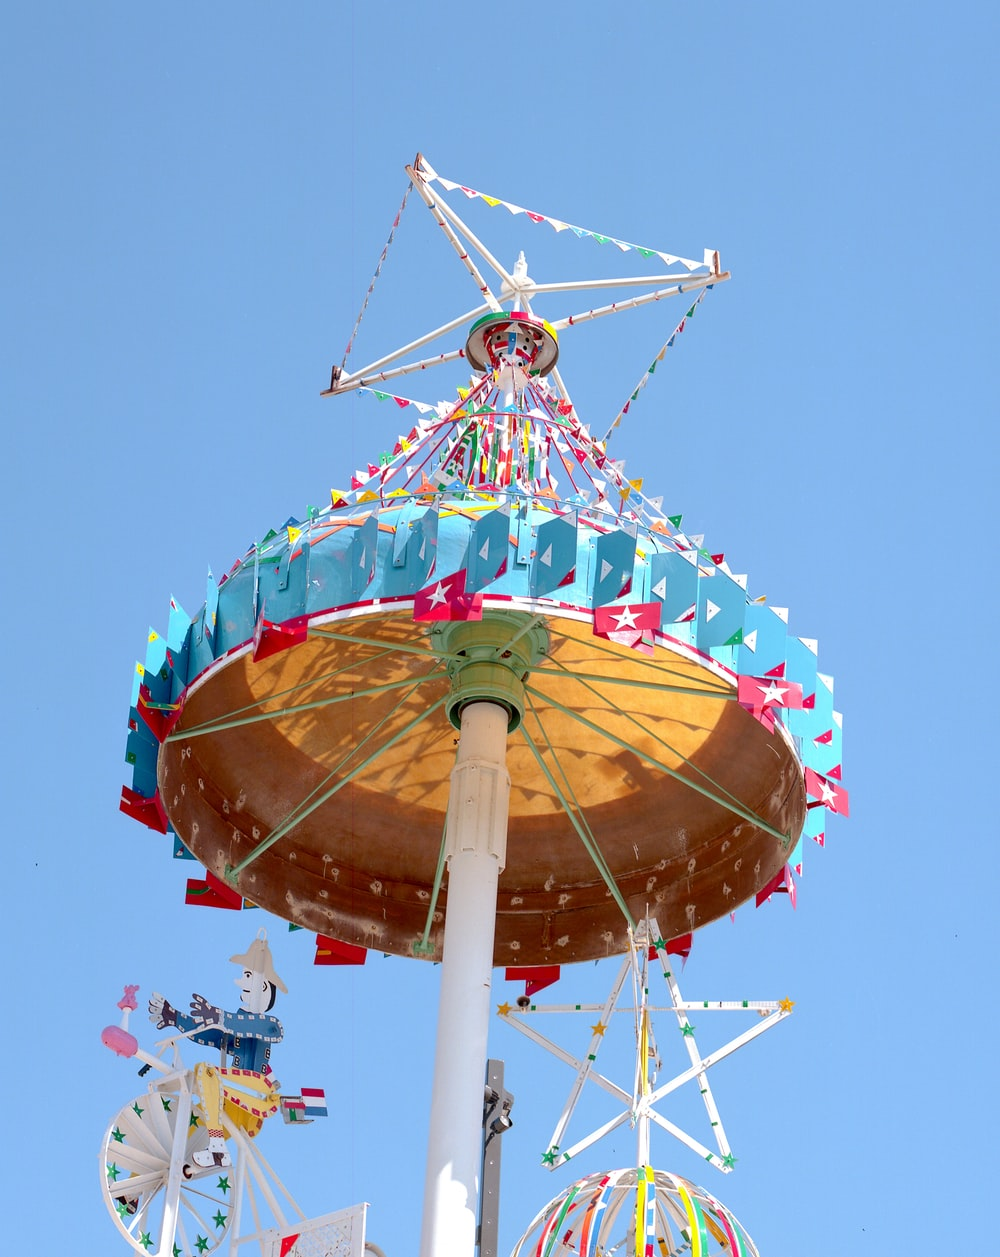 low angle photography of amusement park ride